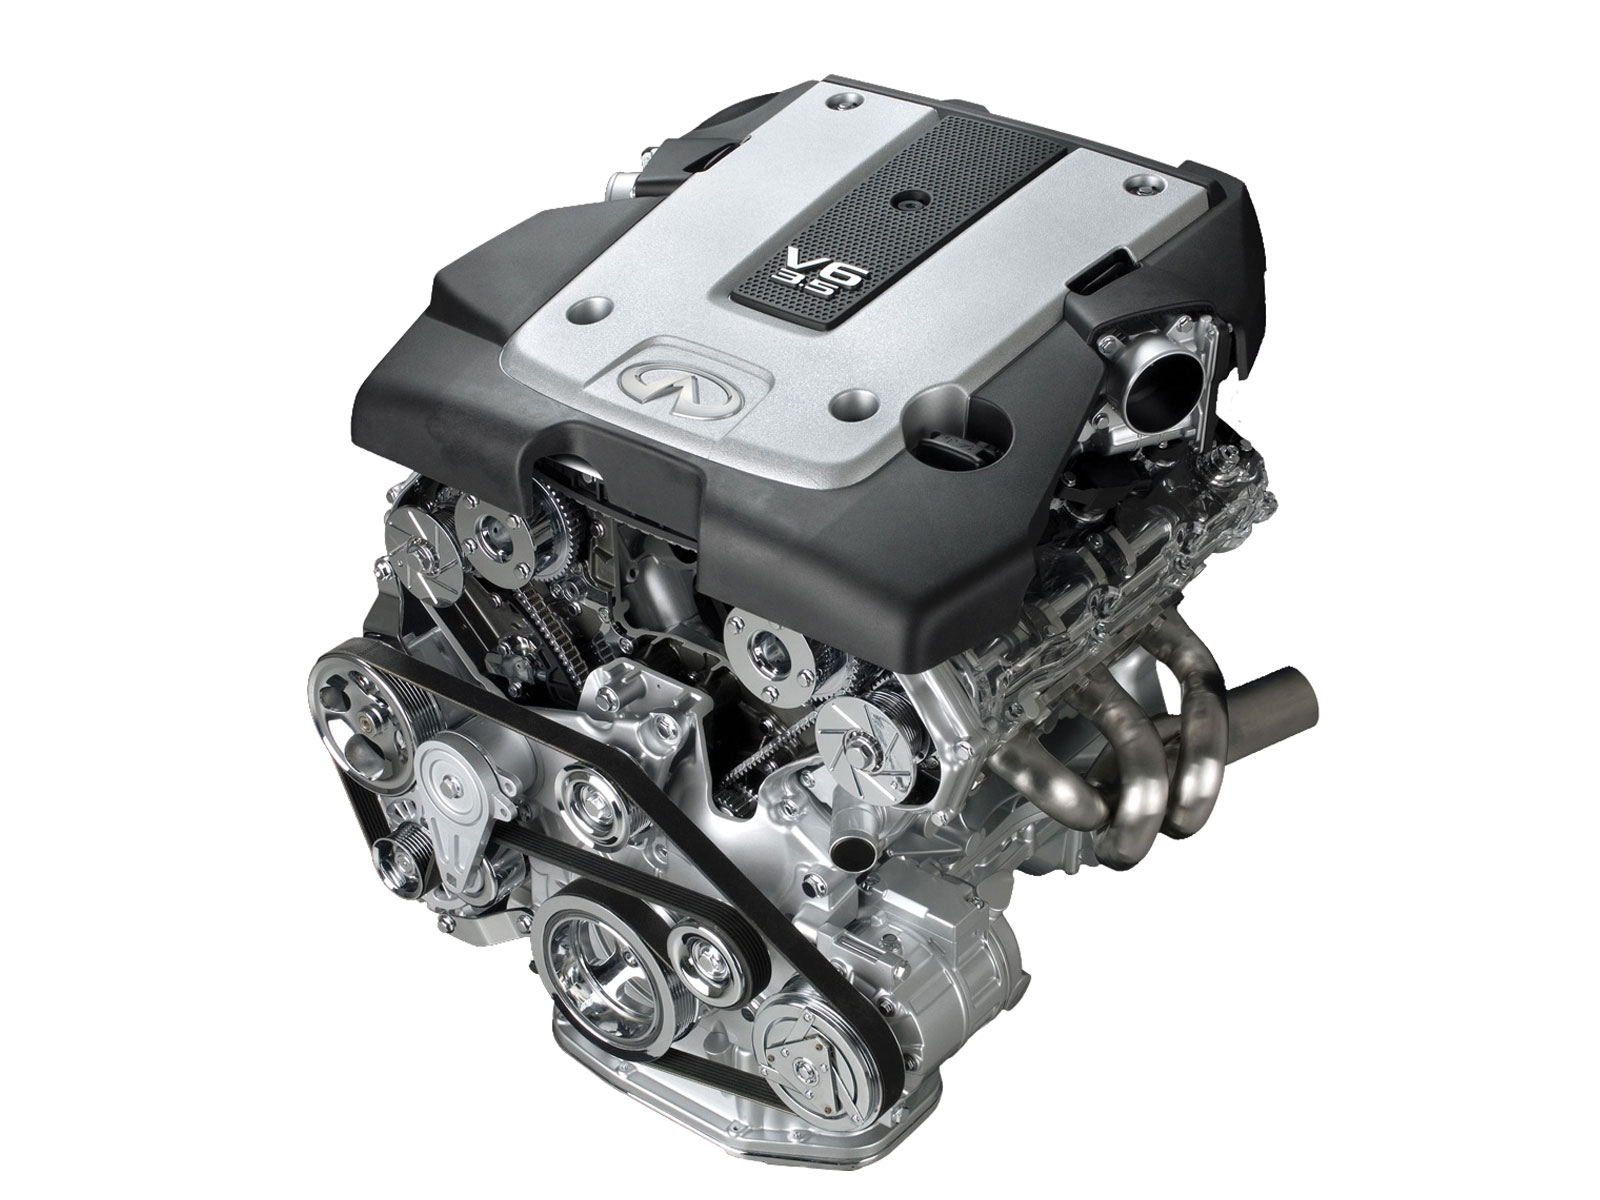 Jdm Auto Engines Now For Sale In Garland Tx At Import